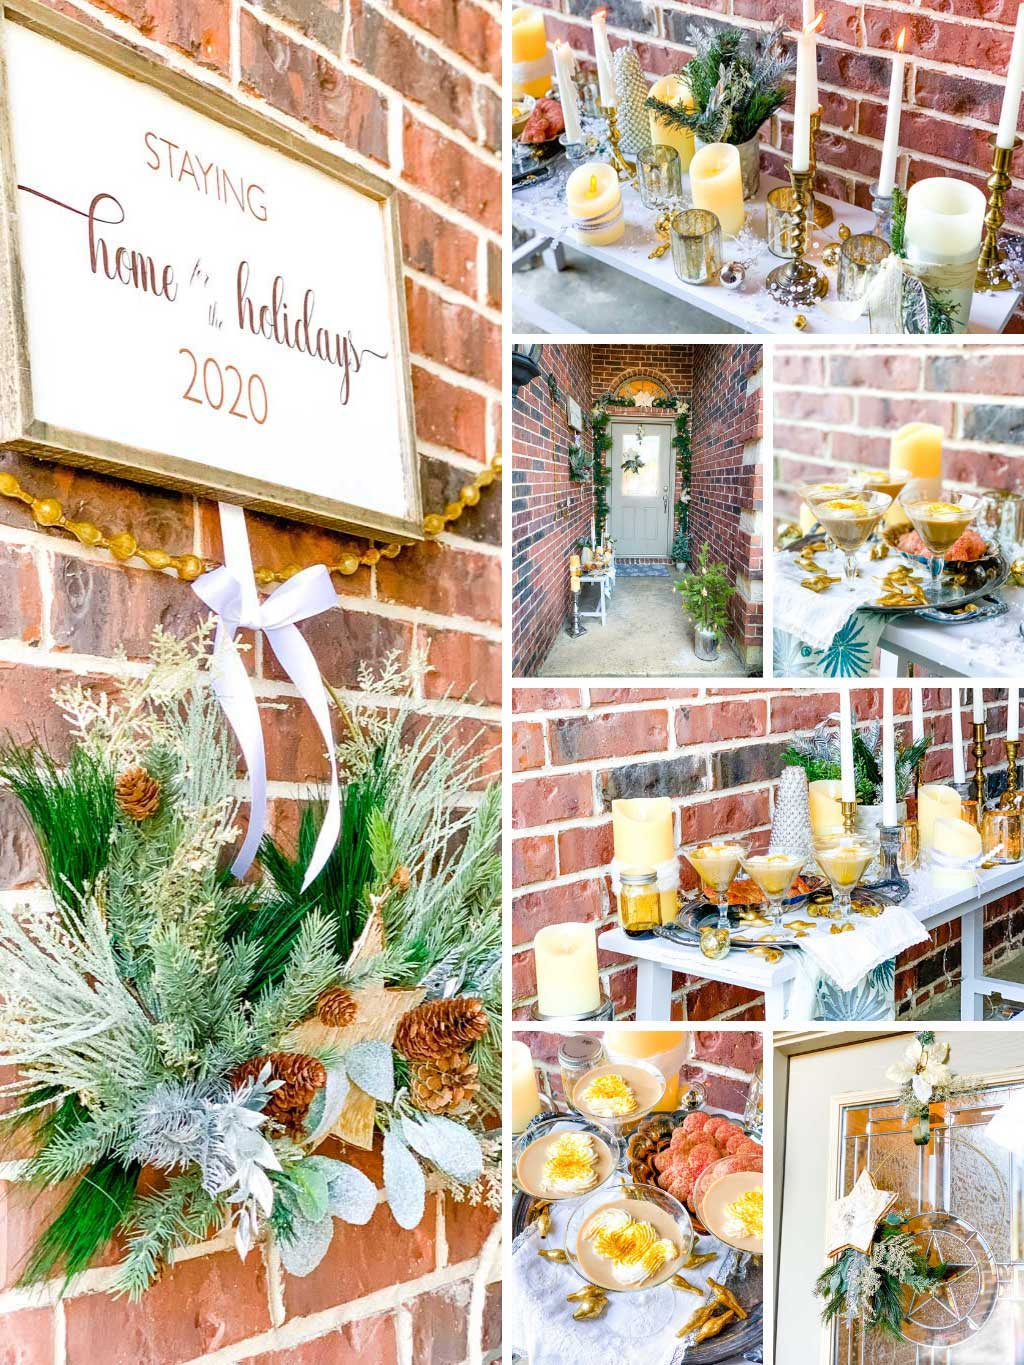 Happy Holidays from my home to yours! Our front porch is open and decorated for the Christmas holiday! Check out all the homemade decorations I made from Christmas items past, a new sign (with free SVG!) that is perfect for 2020, and of course a holiday cocktail to make things merry! via @mrsmajorhoff